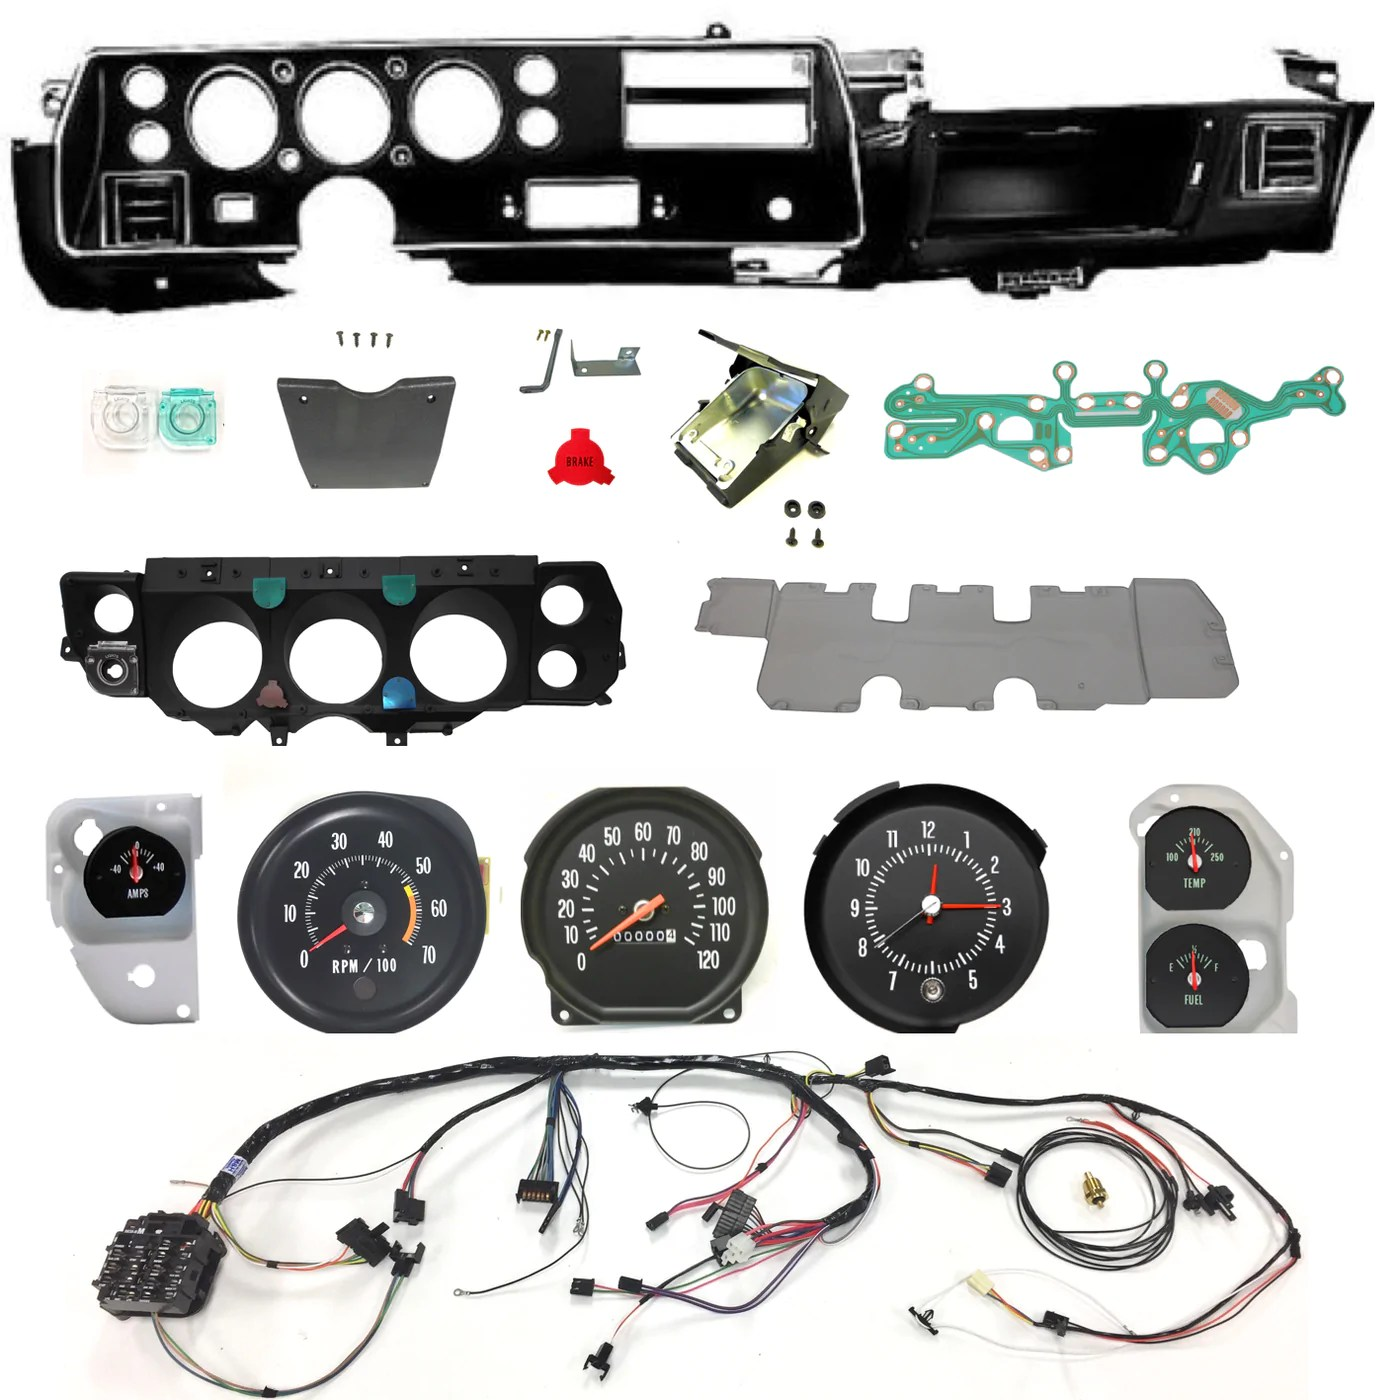 small resolution of 1971 chevelle ss dash conversion kit el camino super sport floor chevelle dash wiring harness main for cars with factory gauges 1970